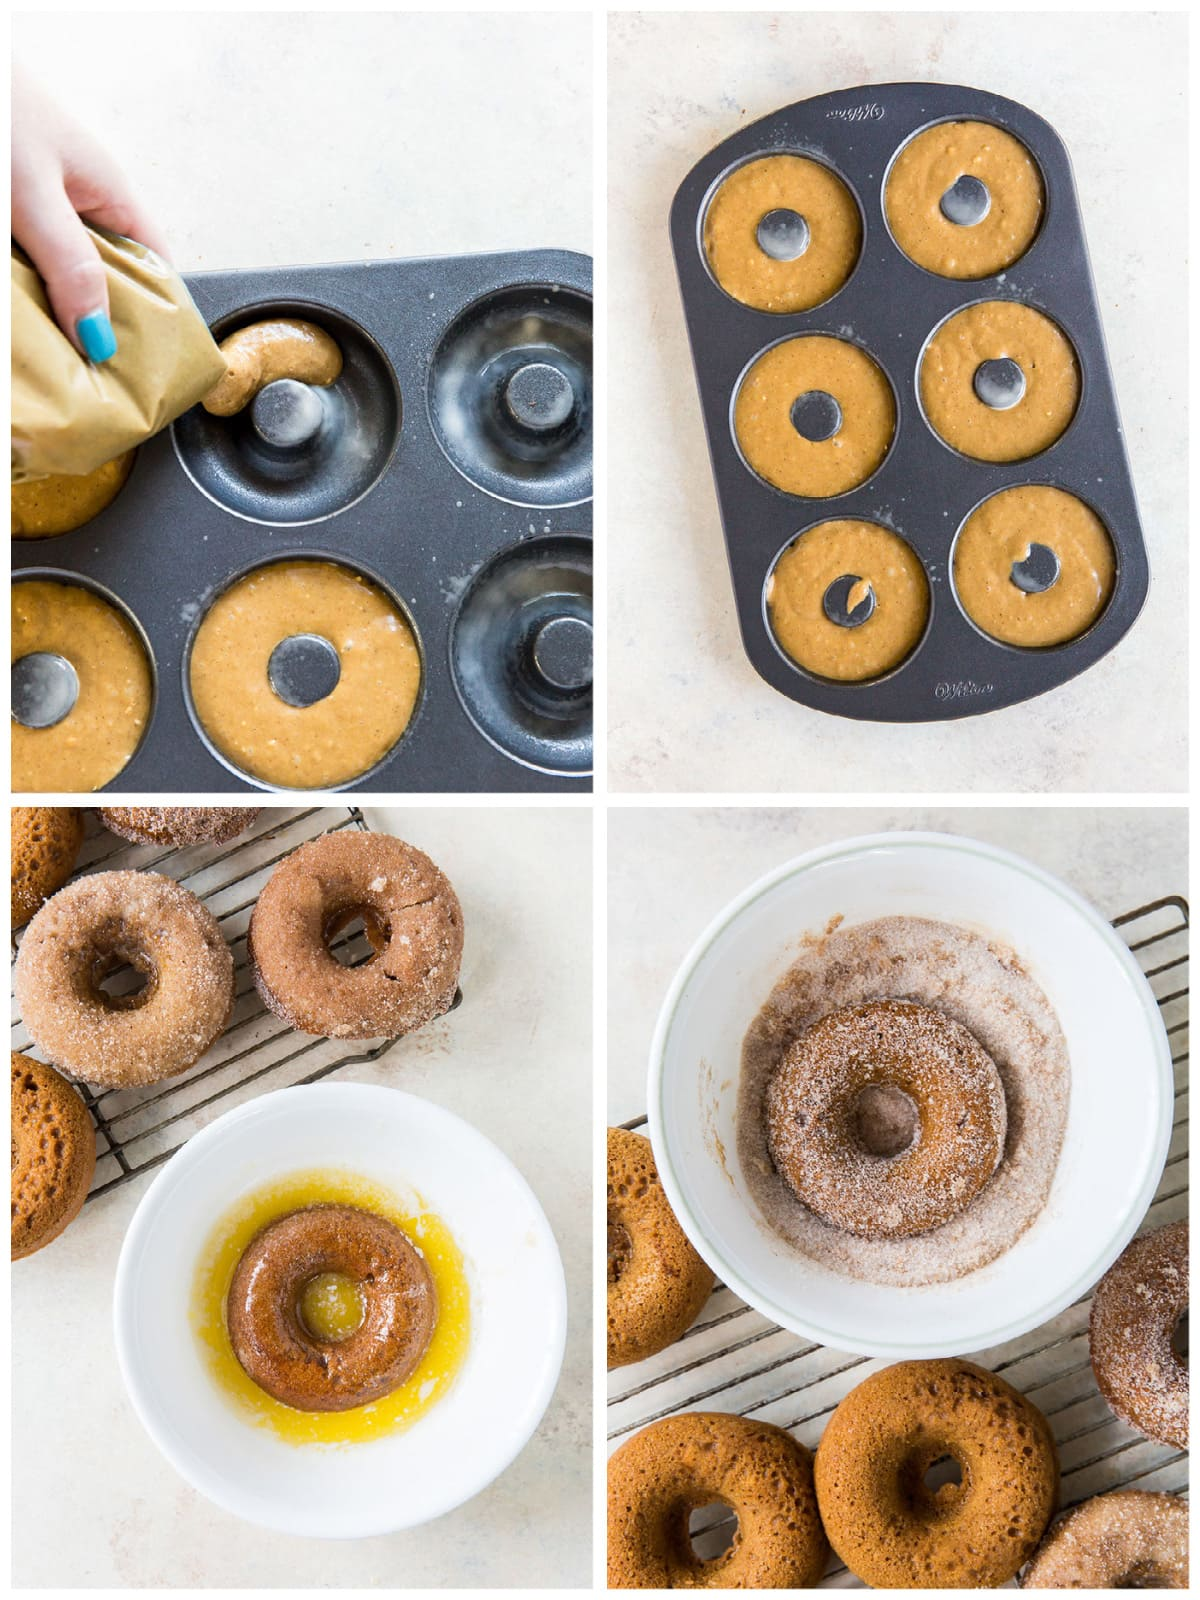 photo collage demonstrating how to make donuts in donut tin and coat donuts in cinnamon sugar